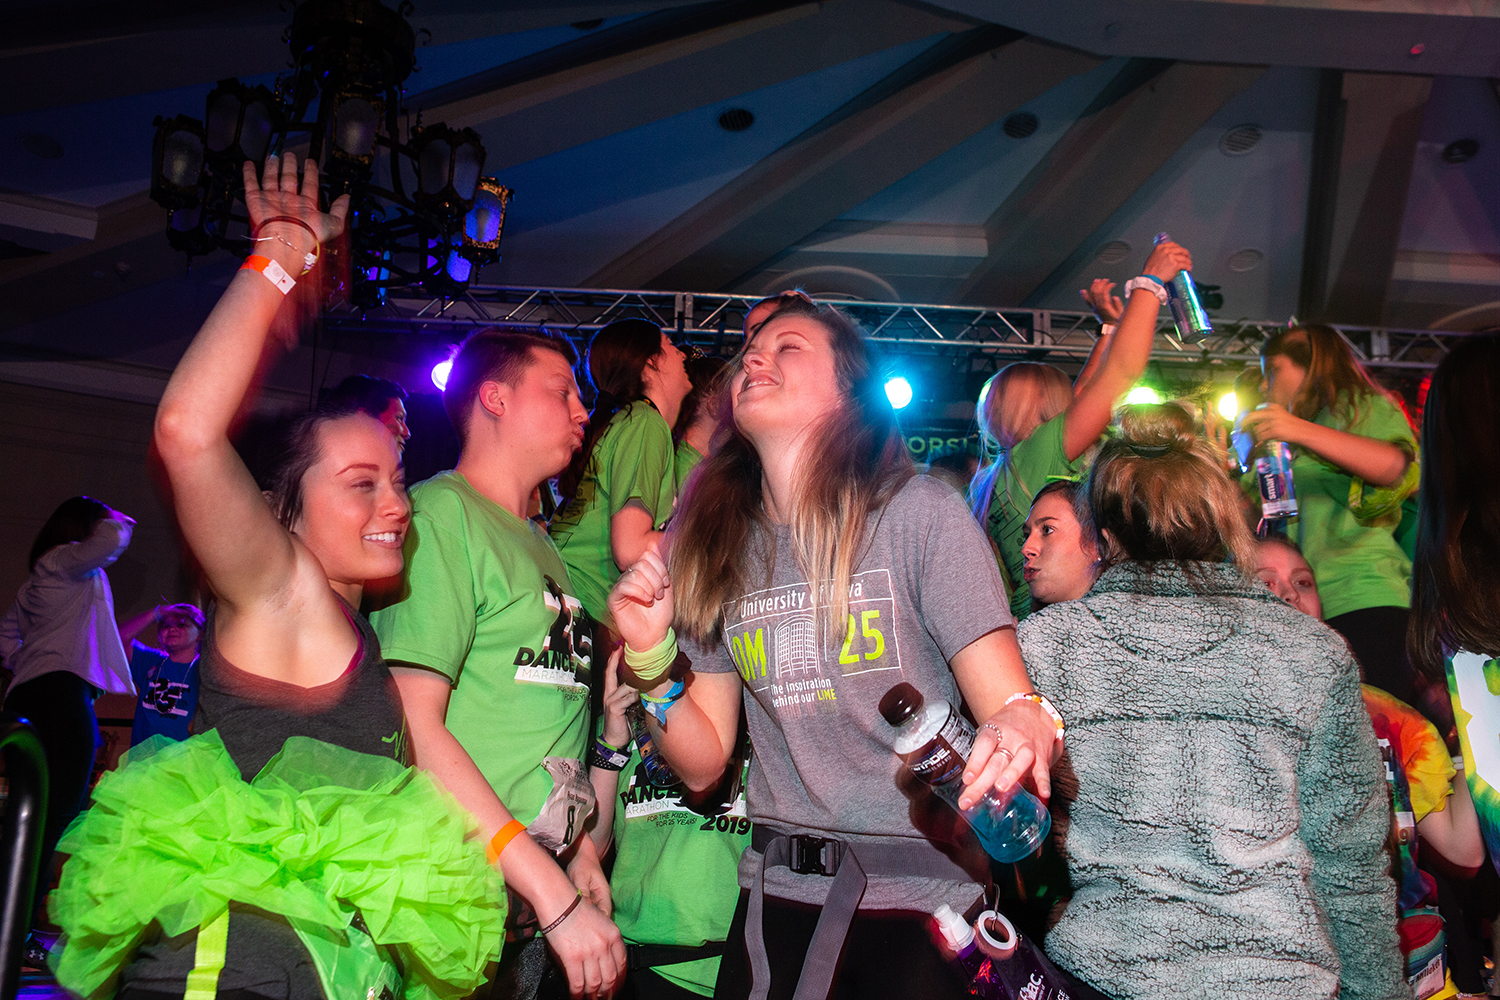 Participants+bust+a+move+during+the+fifth+hour+of+Dance+Marathon+25+at+the+Iowa+Memorial+Union+on+Friday%2C+Feb.+1%2C+2019.